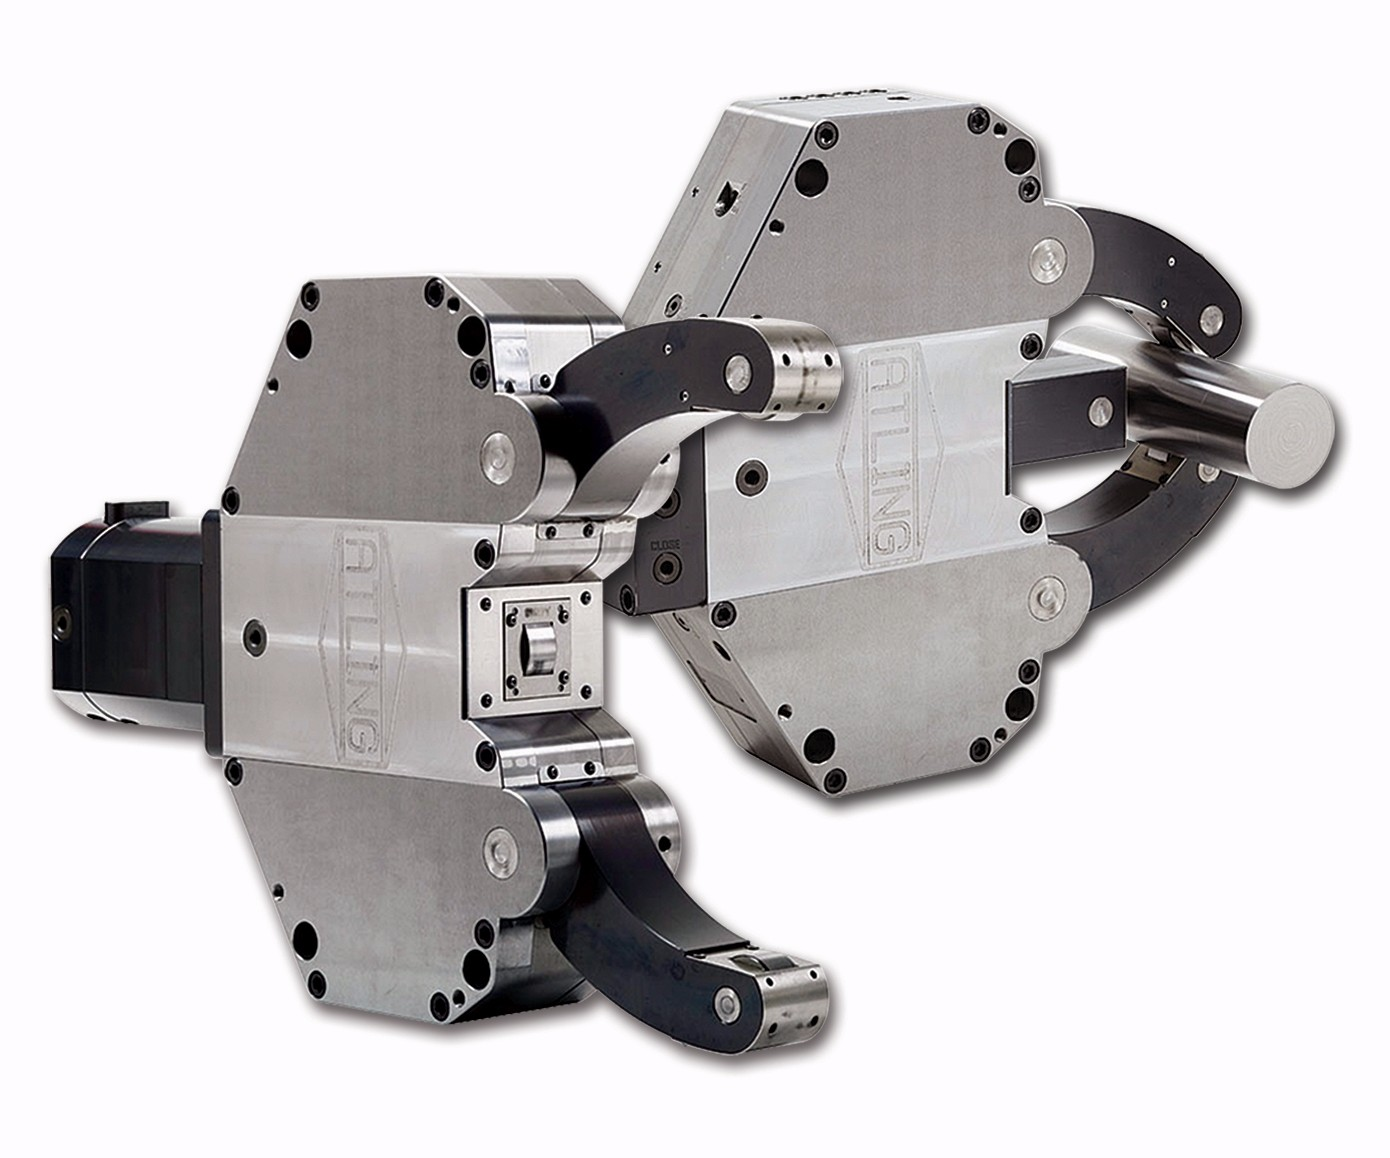 LMC Workholding steady rest